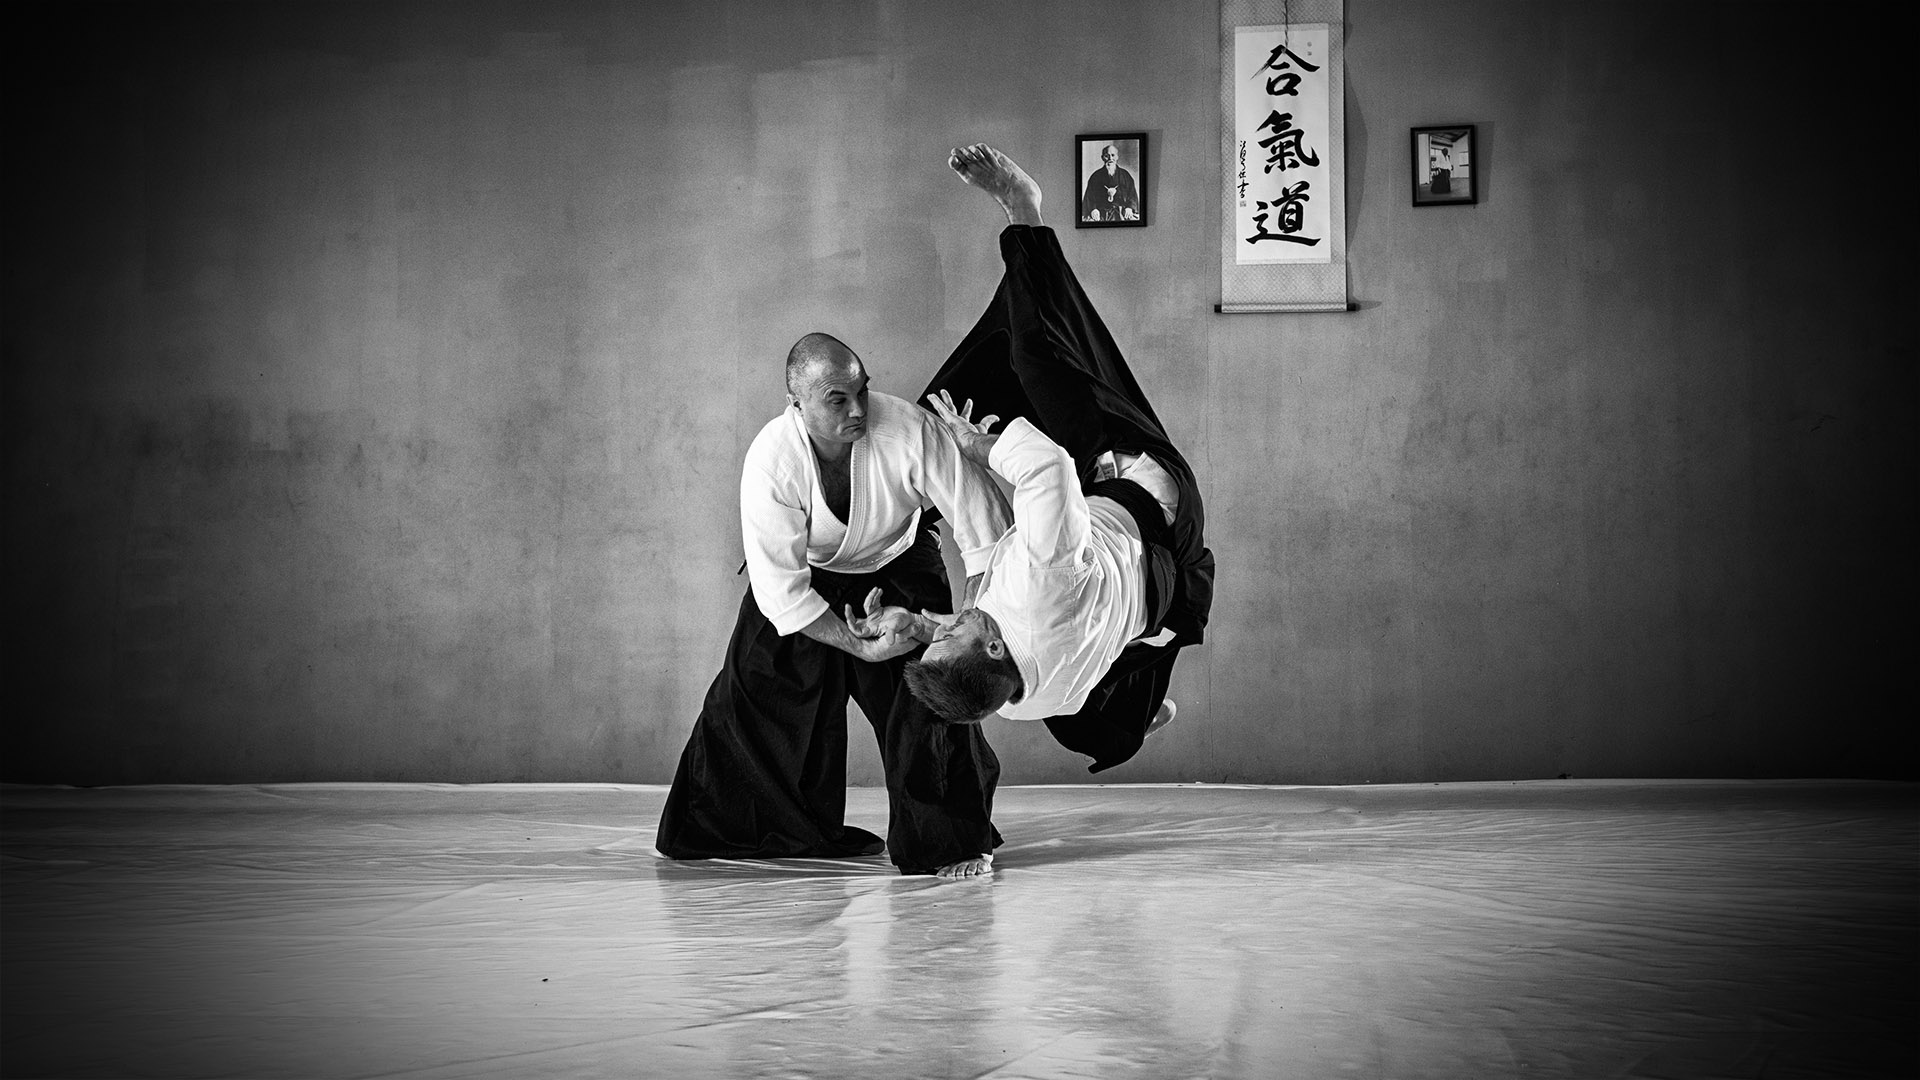 Aikido Wallpapers High Quality Download Free